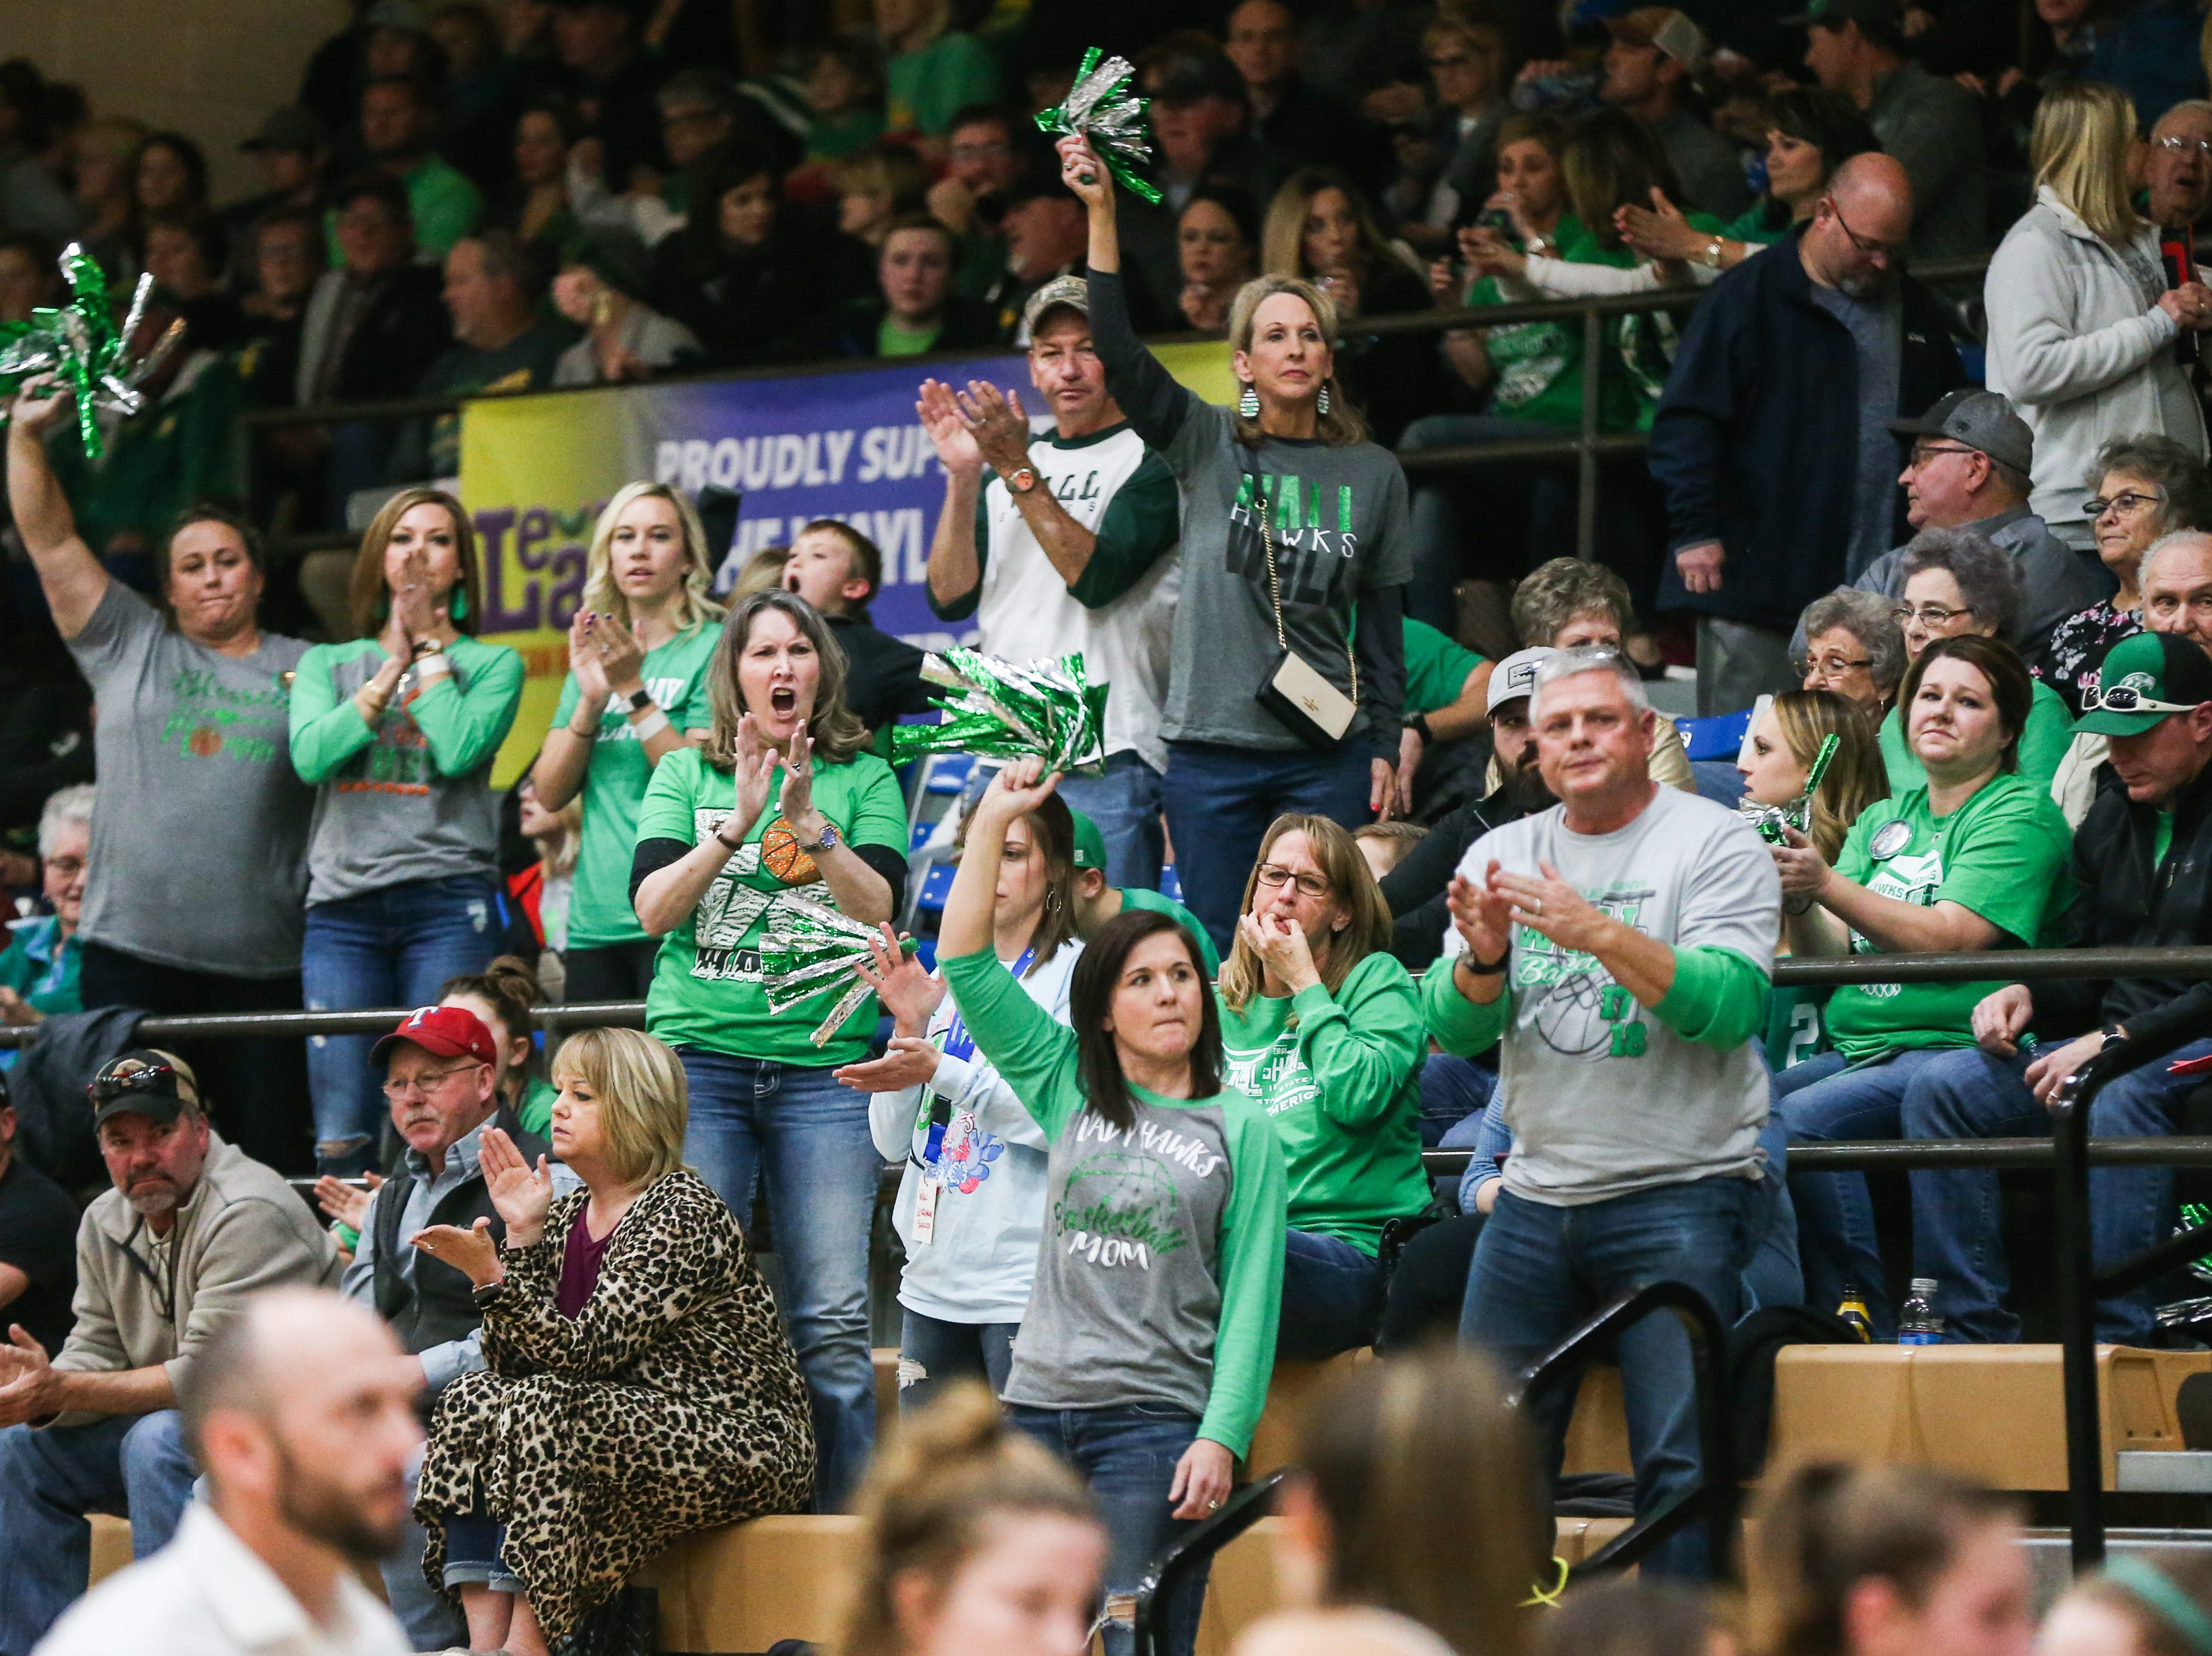 Wall fans cheer on their team during the 1-3A regional tournament against Brock Friday, Feb. 22, 2019, at Wayland Baptist University in Plainview.